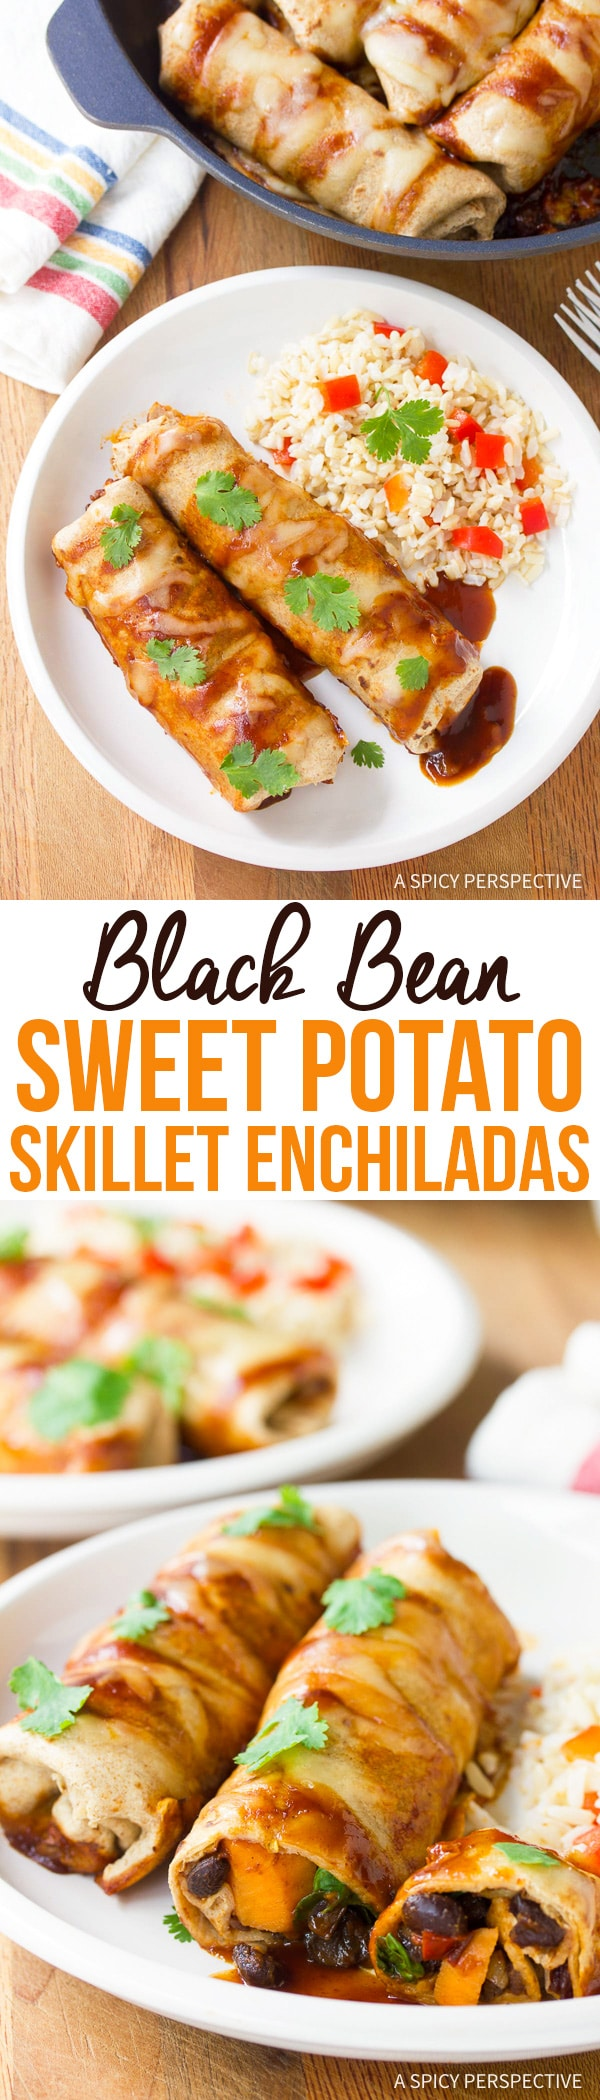 Vegetarian Black Bean Sweet Potato Skillet Enchiladas Recipe